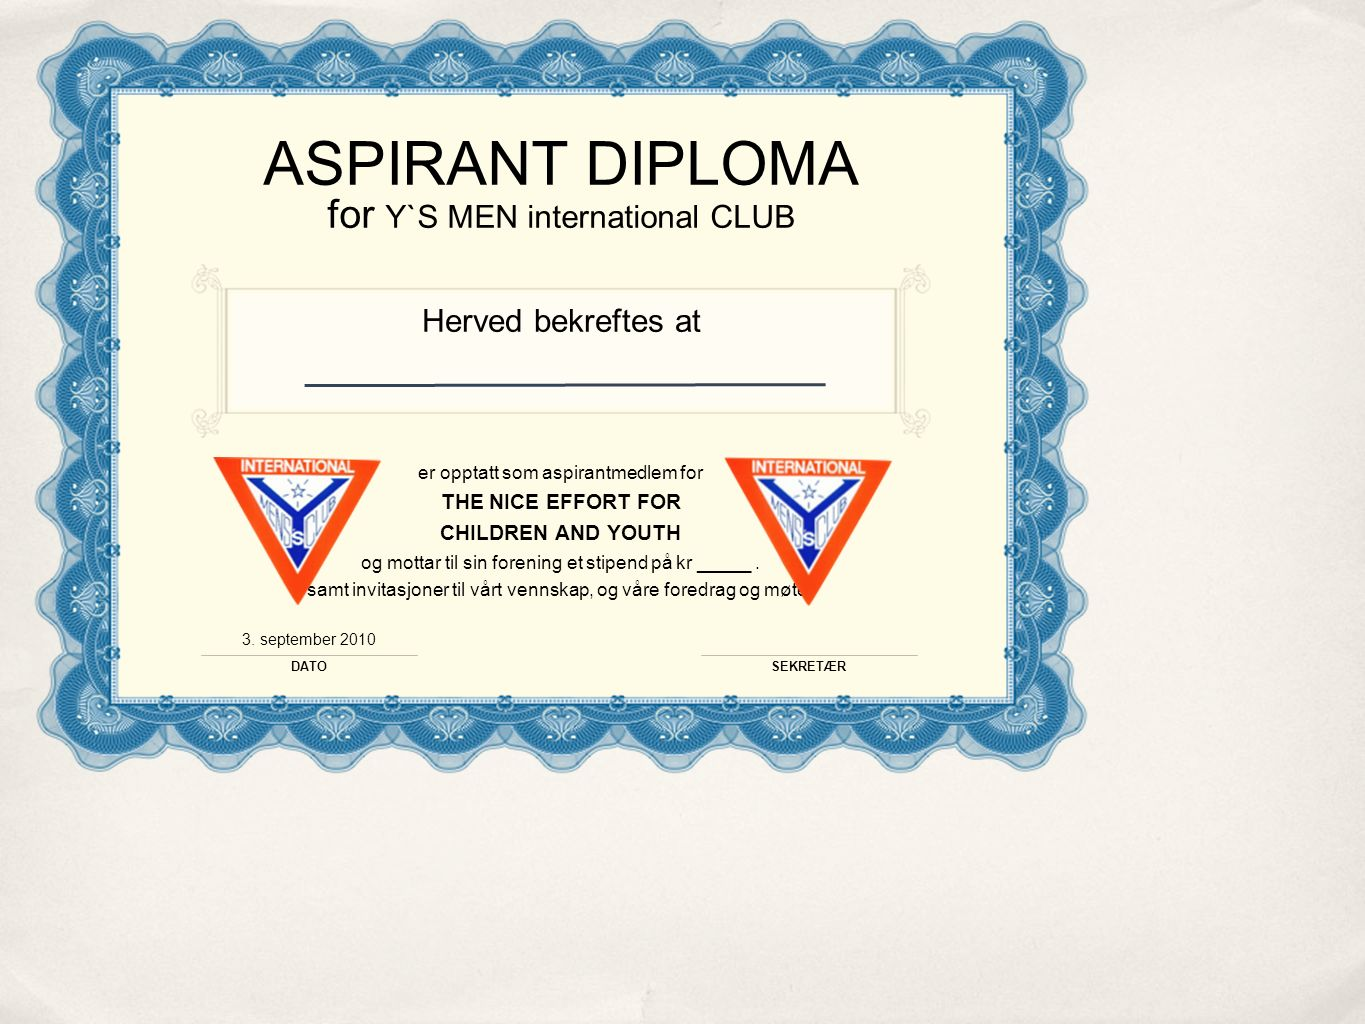 ASPIRANT DIPLOMA for Y`S MEN international CLUB Herved bekreftes at er opptatt som aspirantmedlem for THE NICE EFFORT FOR CHILDREN AND YOUTH og mottar til sin forening et stipend på kr _____.